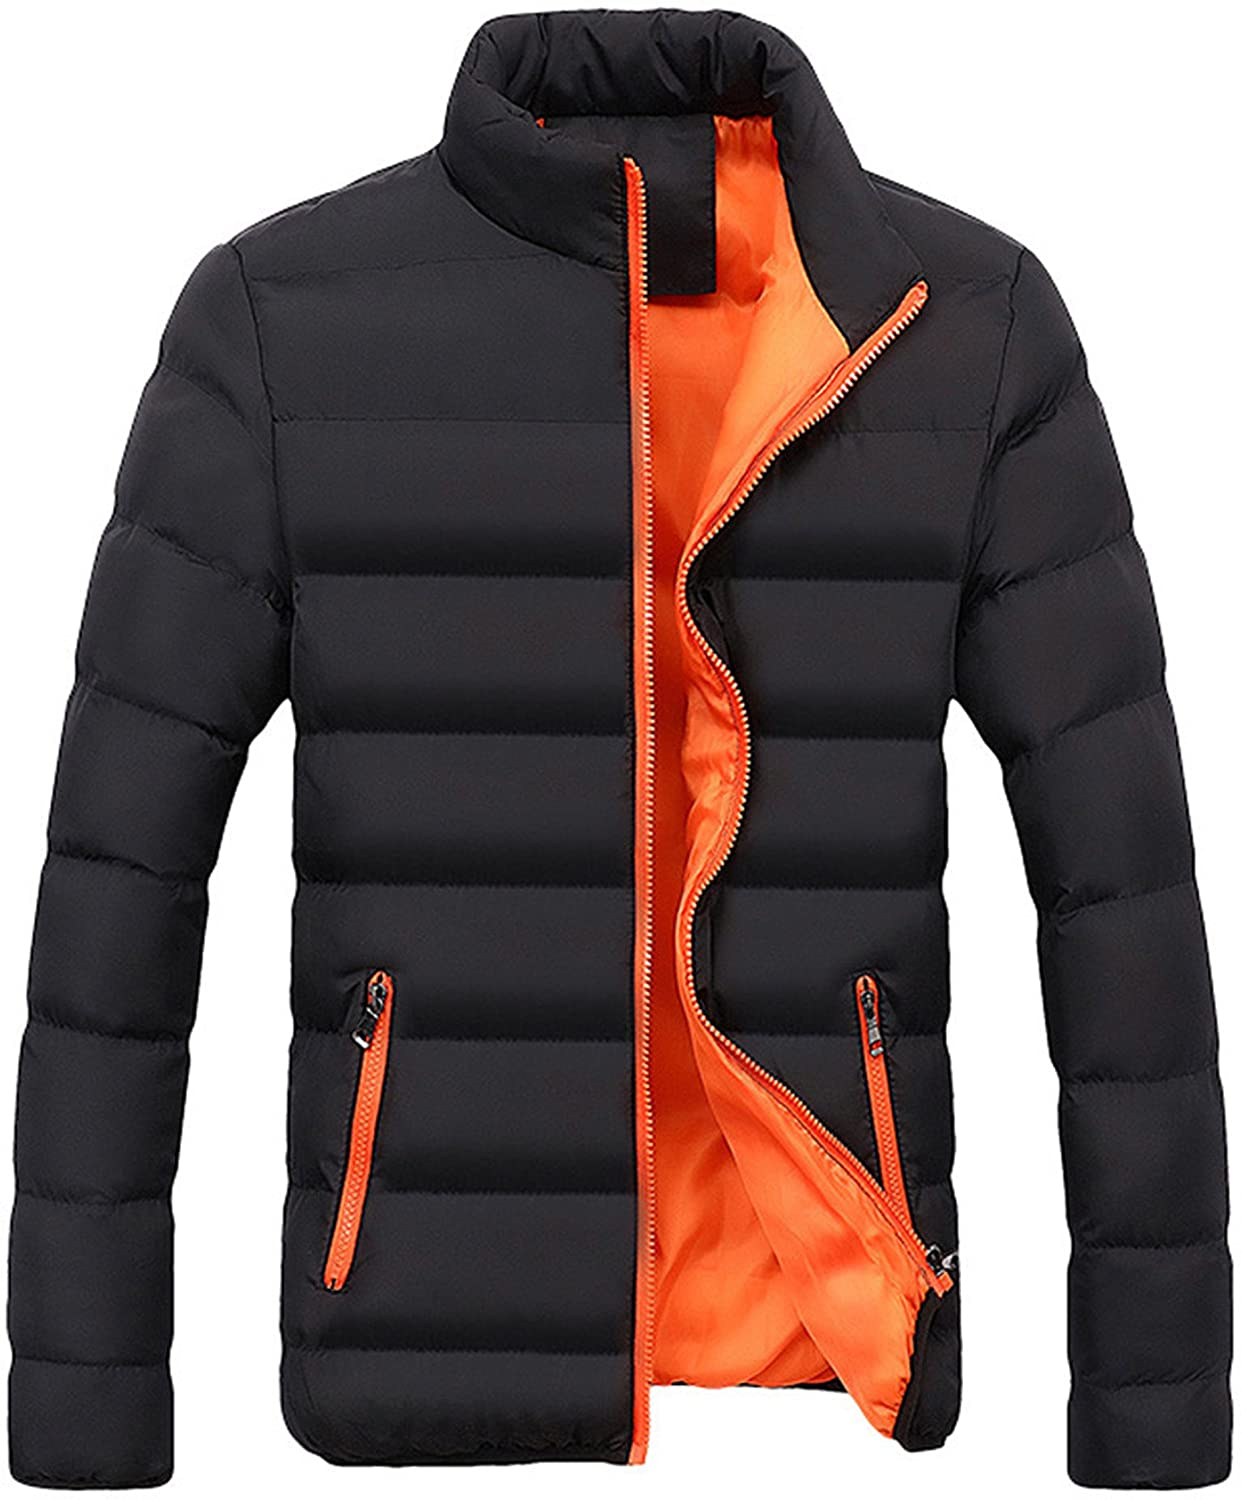 Londony ♥‿♥ Winter Coats for Men,Men's Packable Lightweight Zip Up Pockets Down Jacket Puffer Outwear